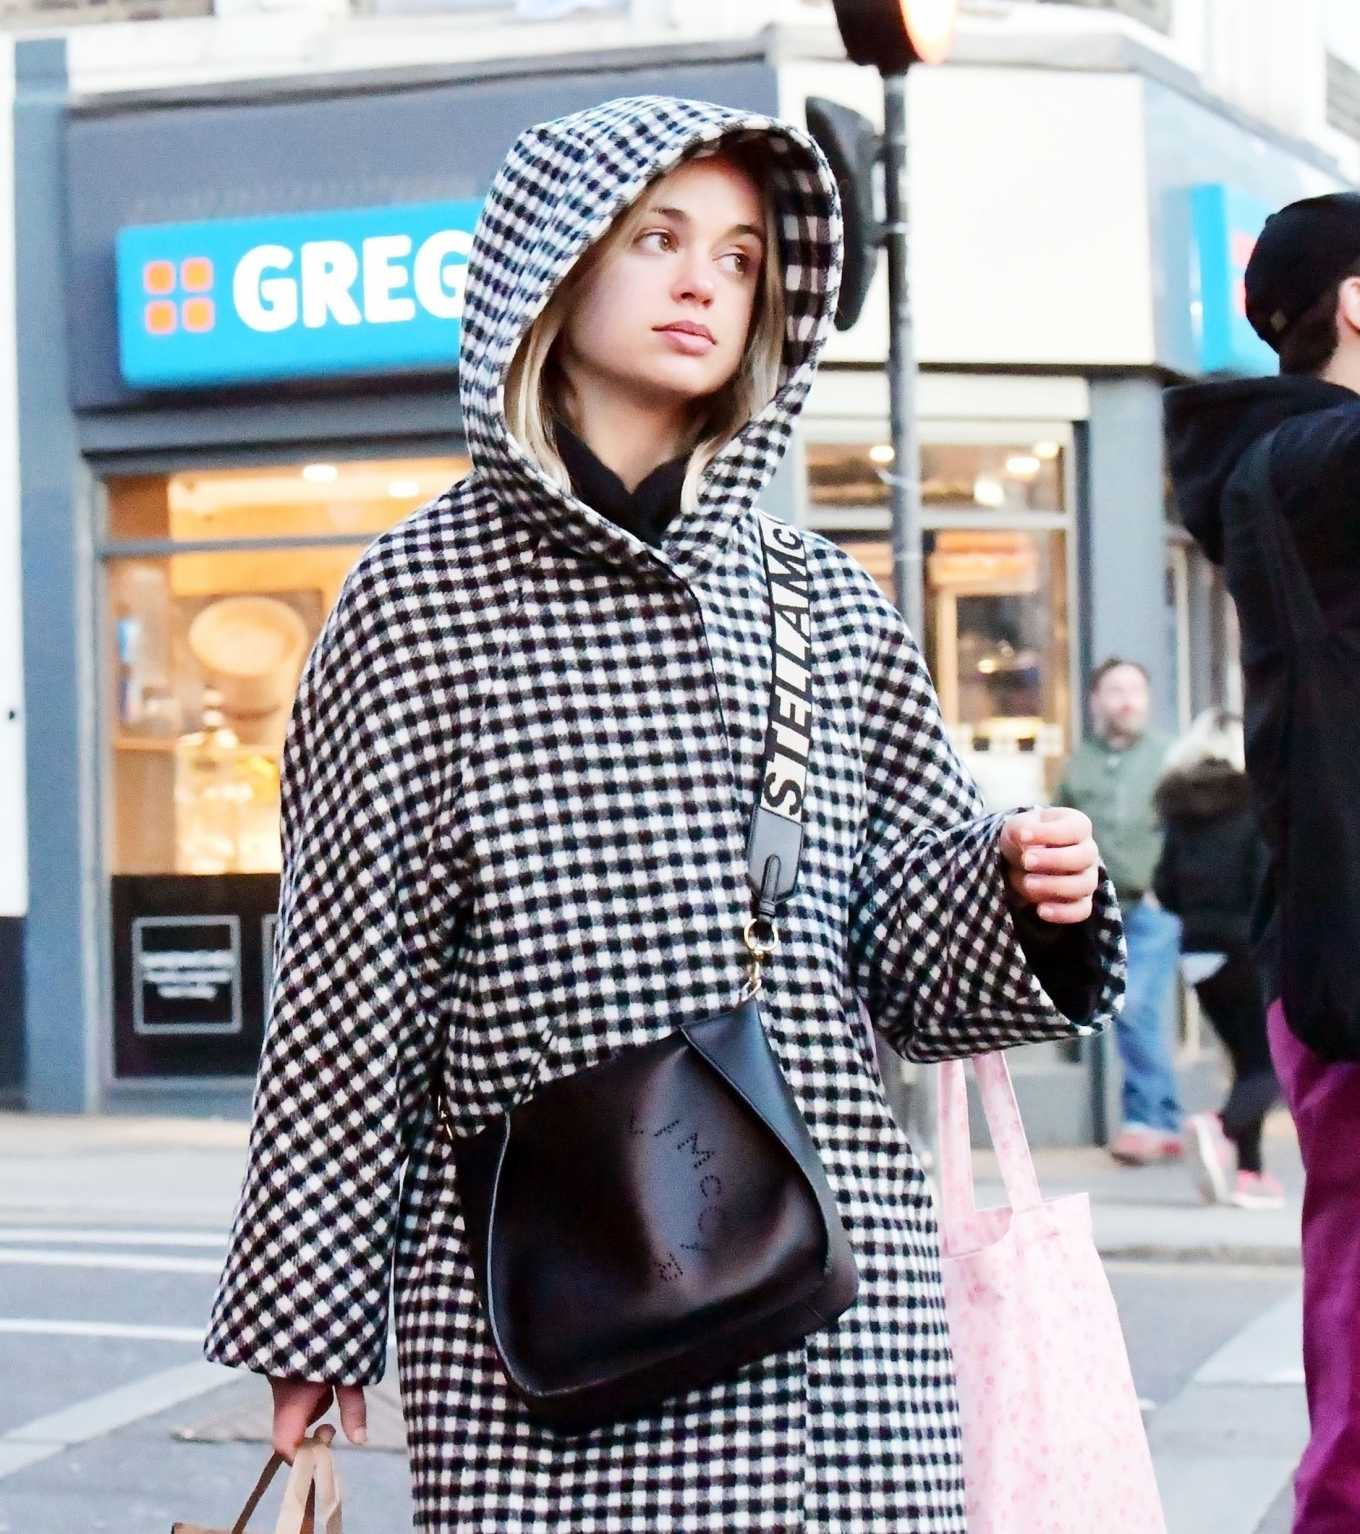 Amelia Windsor 2020 : Amelia Windsor – Looks stylis while out in the trendy area of Notting Hill-23